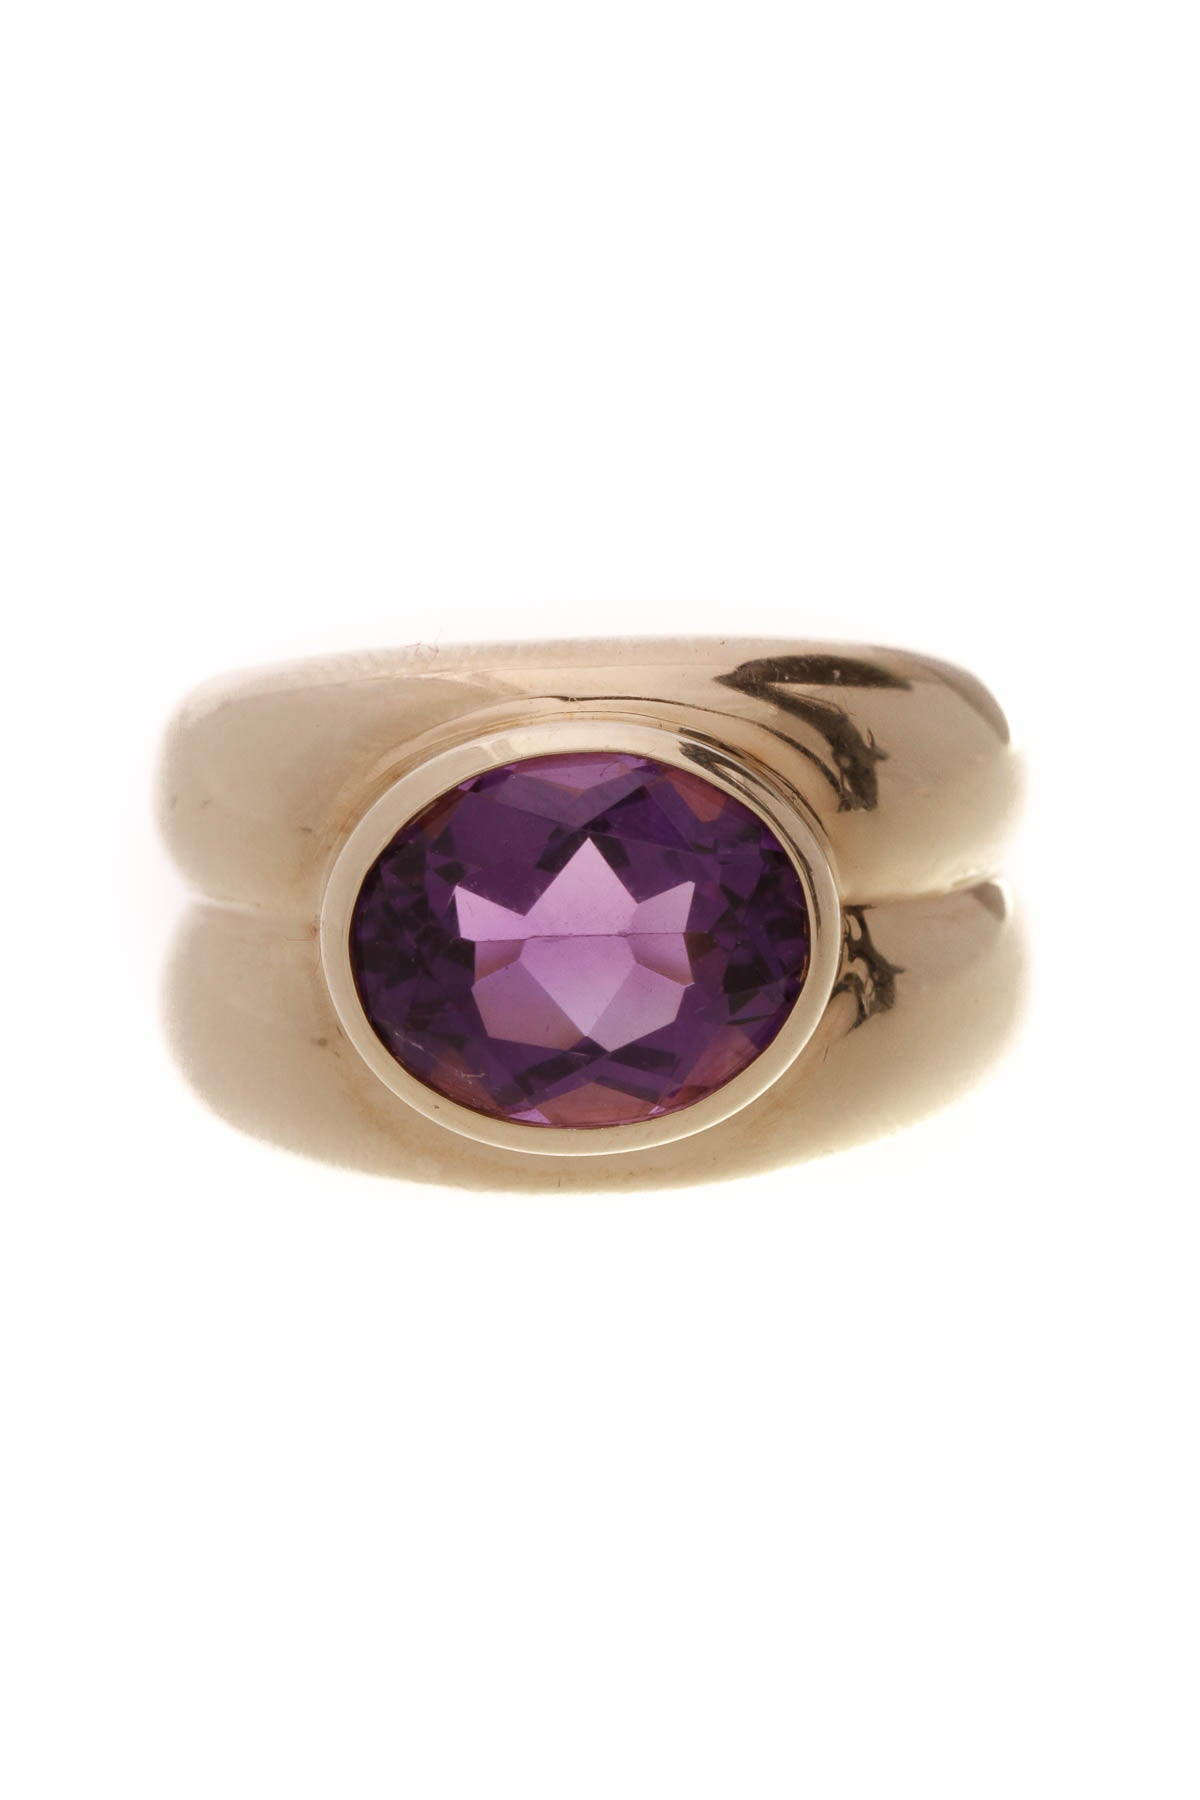 8efa1cc02 Tiffany & Co. Amethyst Ring - Yellow Gold Size 7.5 – Couture USA